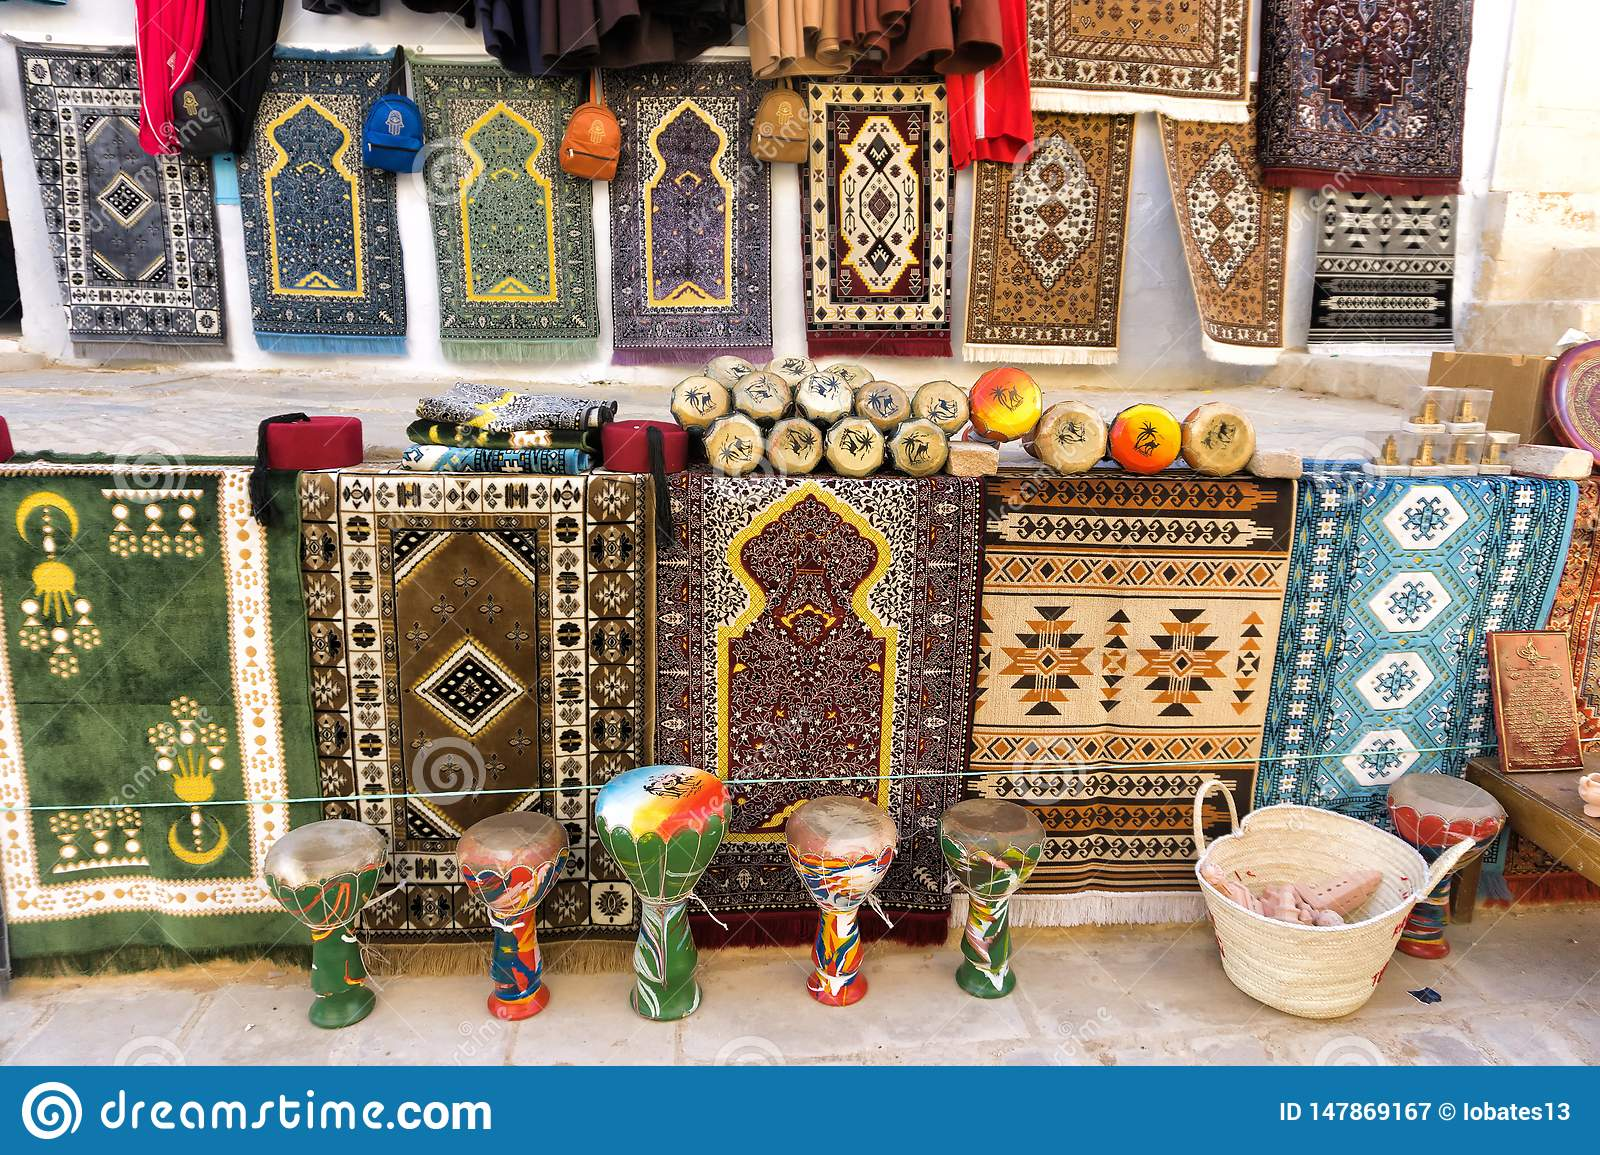 Colorful Carpets for Sale in Kairouan, Tunisia